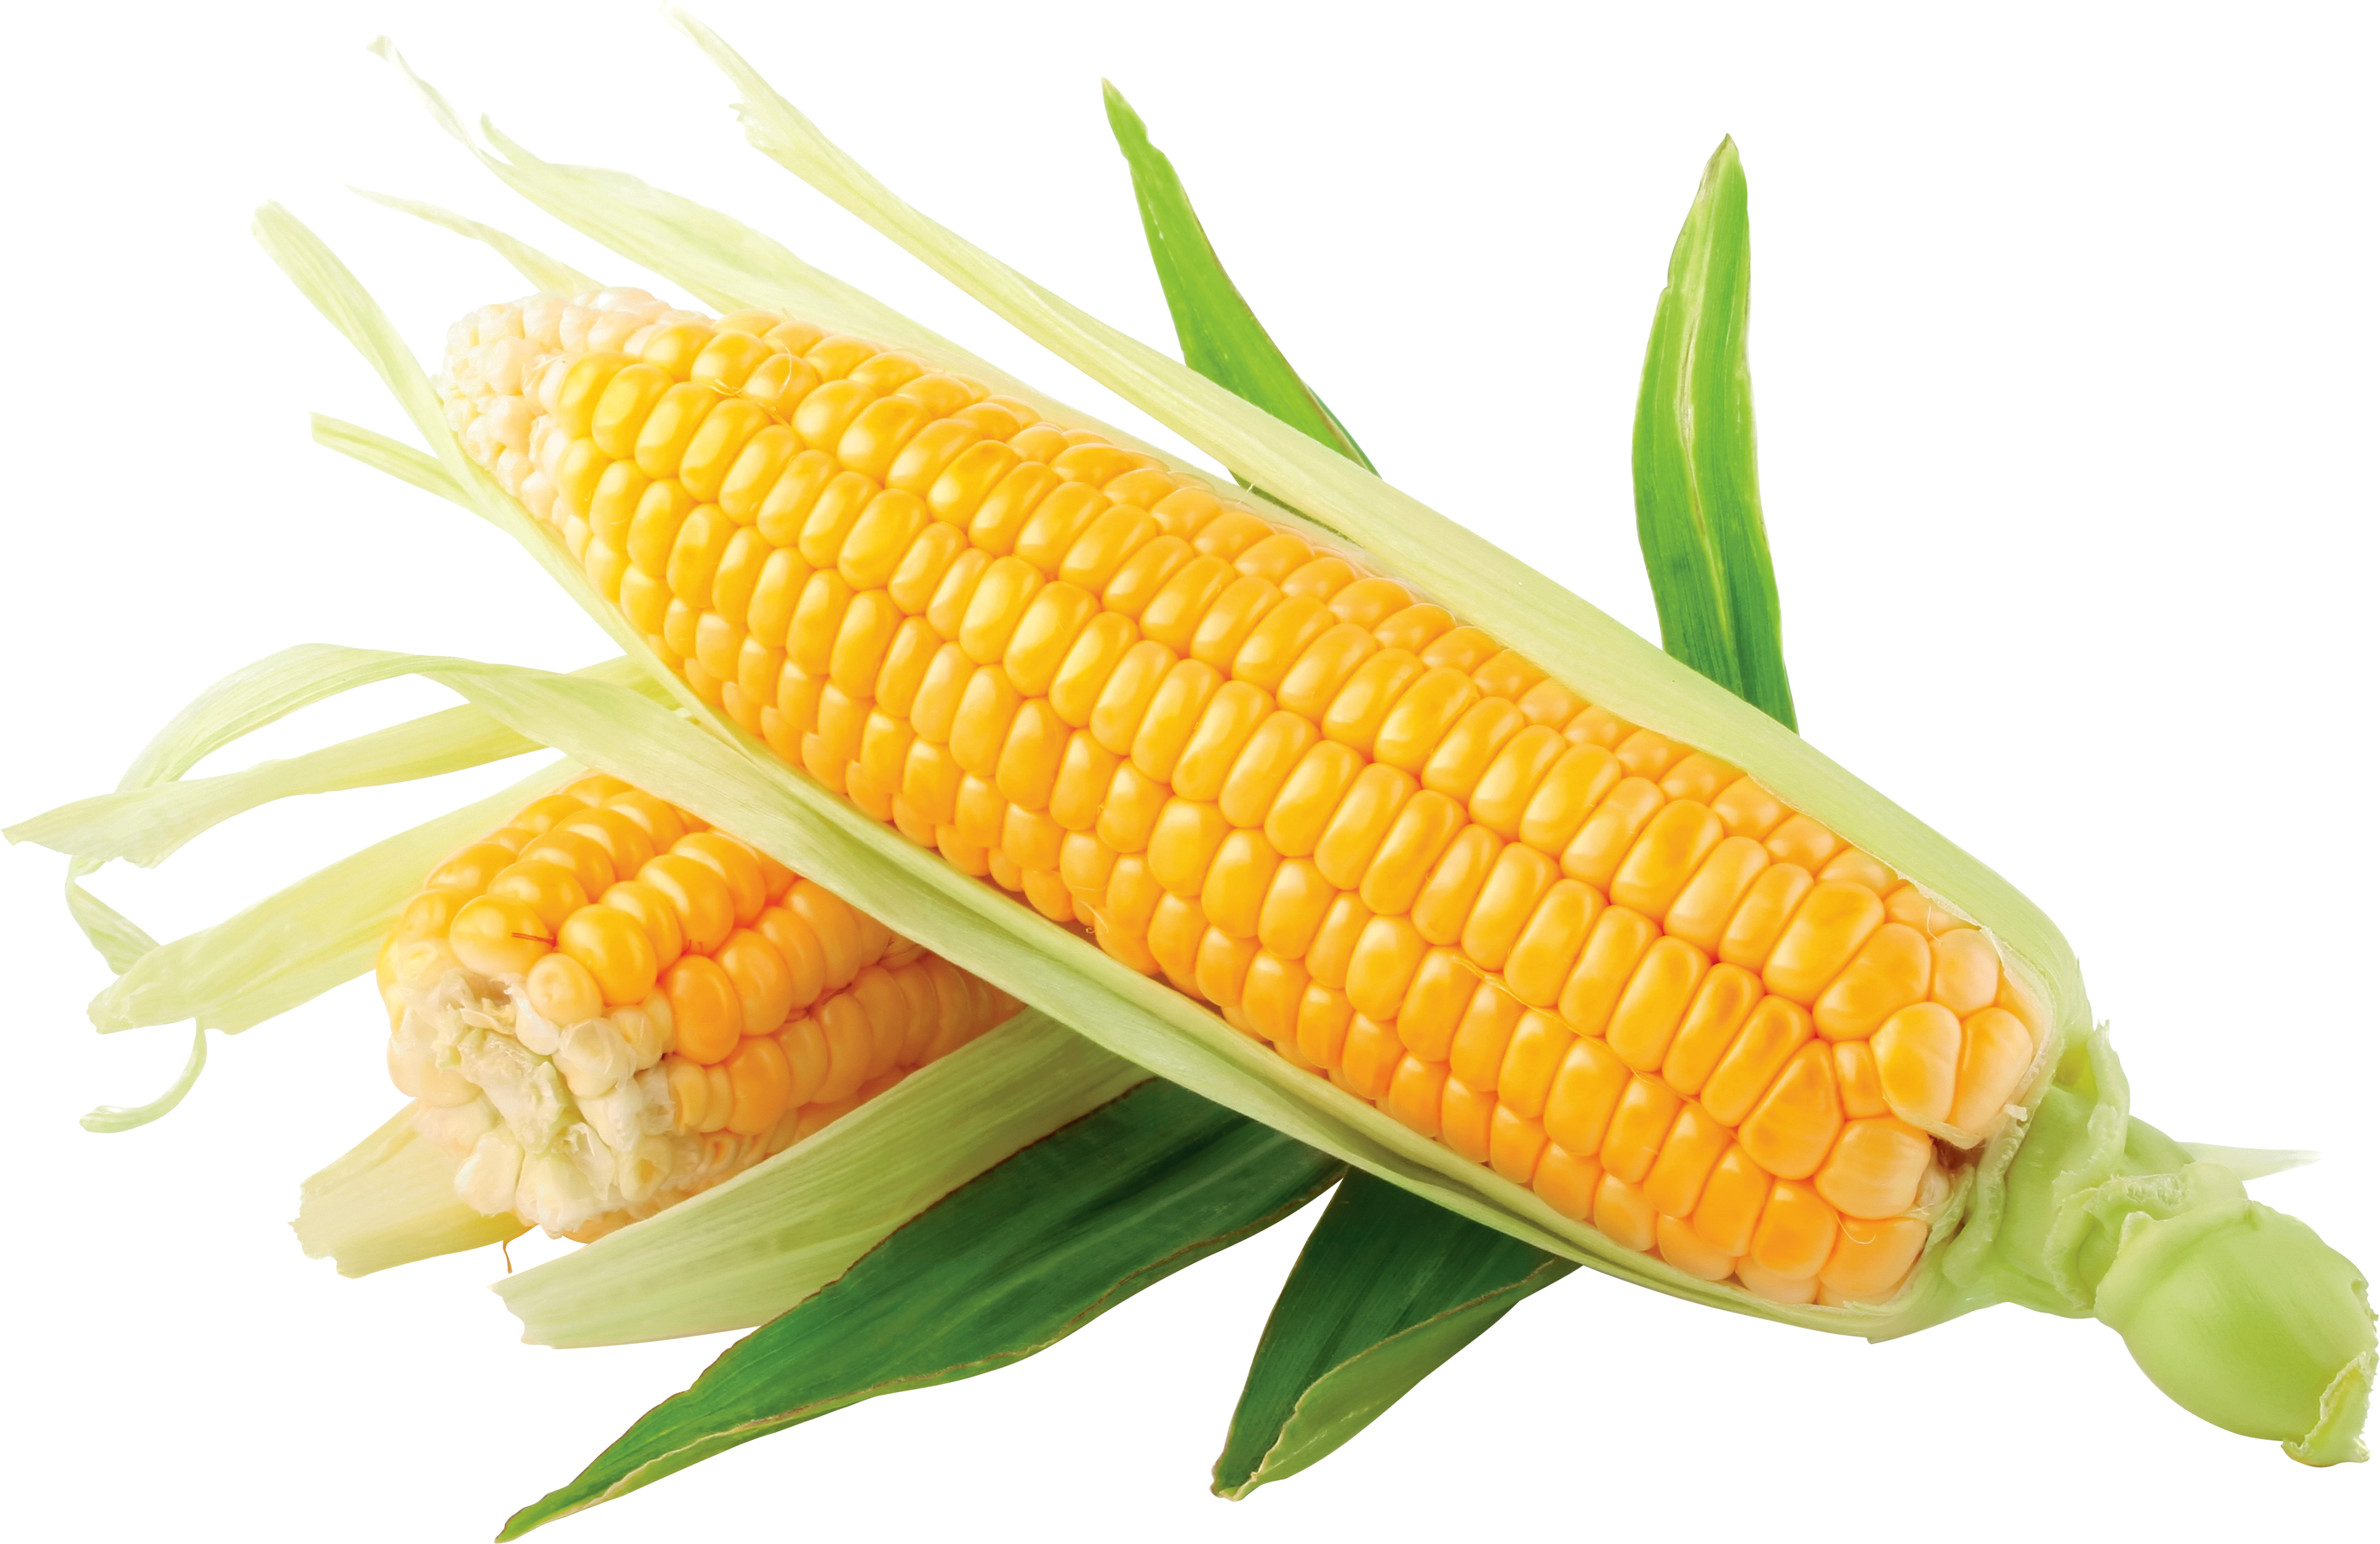 Free sweet corn clipart clip art image 9 of image.